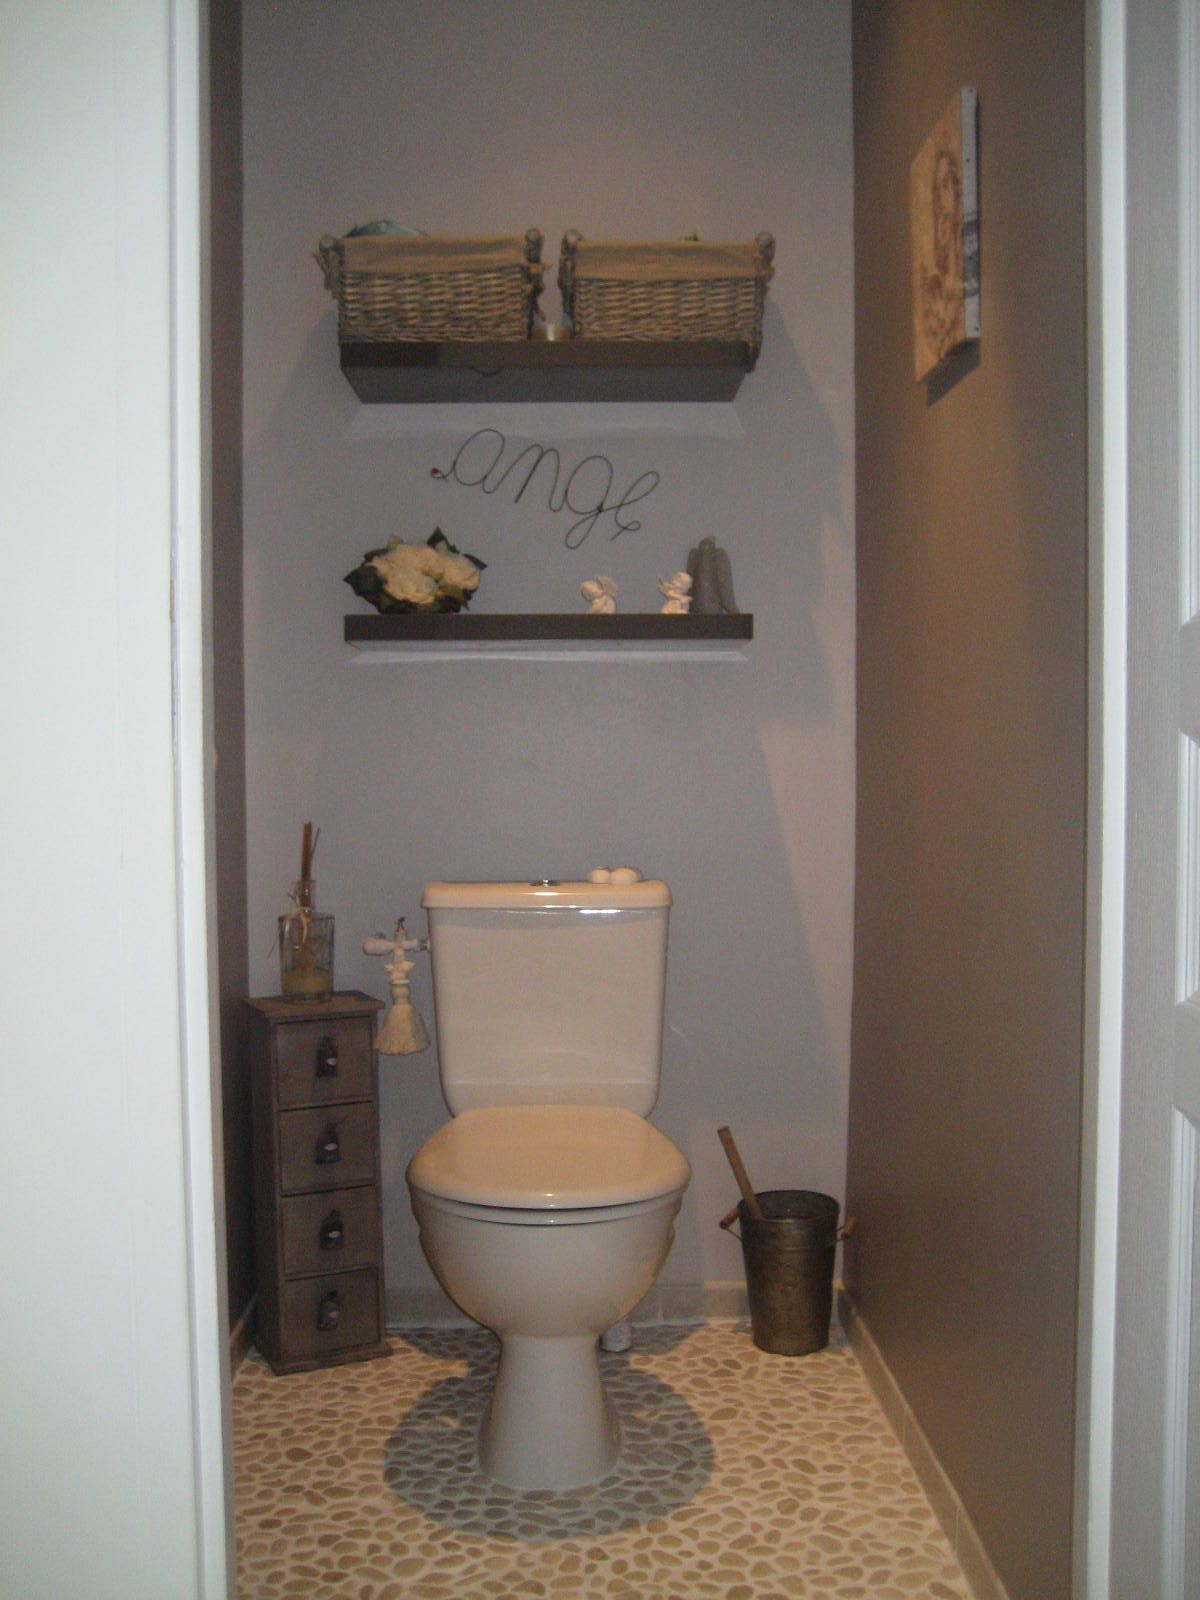 Toilette deco google search nouvelle maison pinterest d co toilettes lampe photo et - Decoration de toilettes zen ...